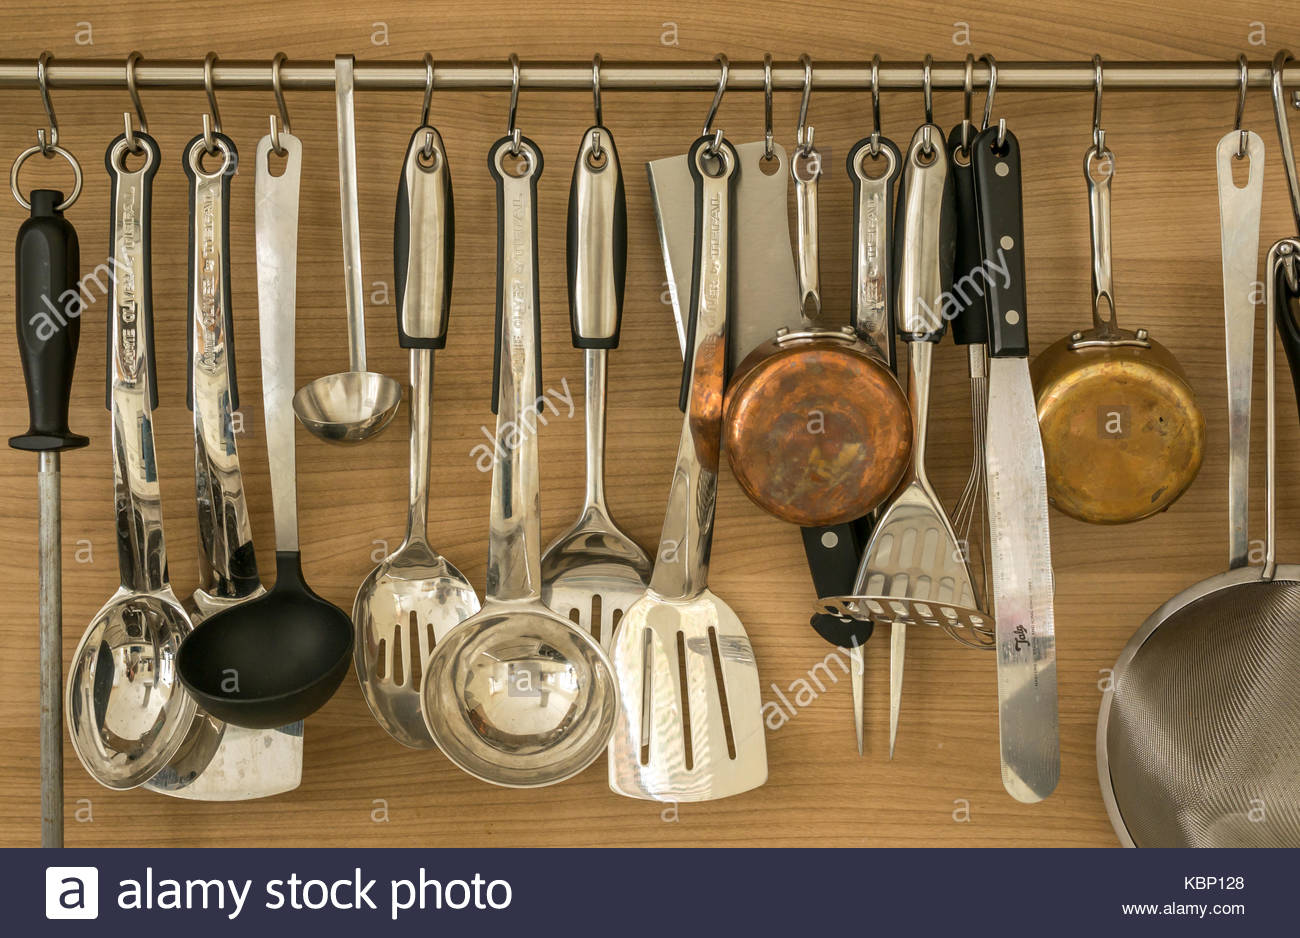 Batterie de cuisine, kitchen spoons, ladles, copper saucepans, fish slices, knife sharpening steel and kitchen utensils - Stock Image